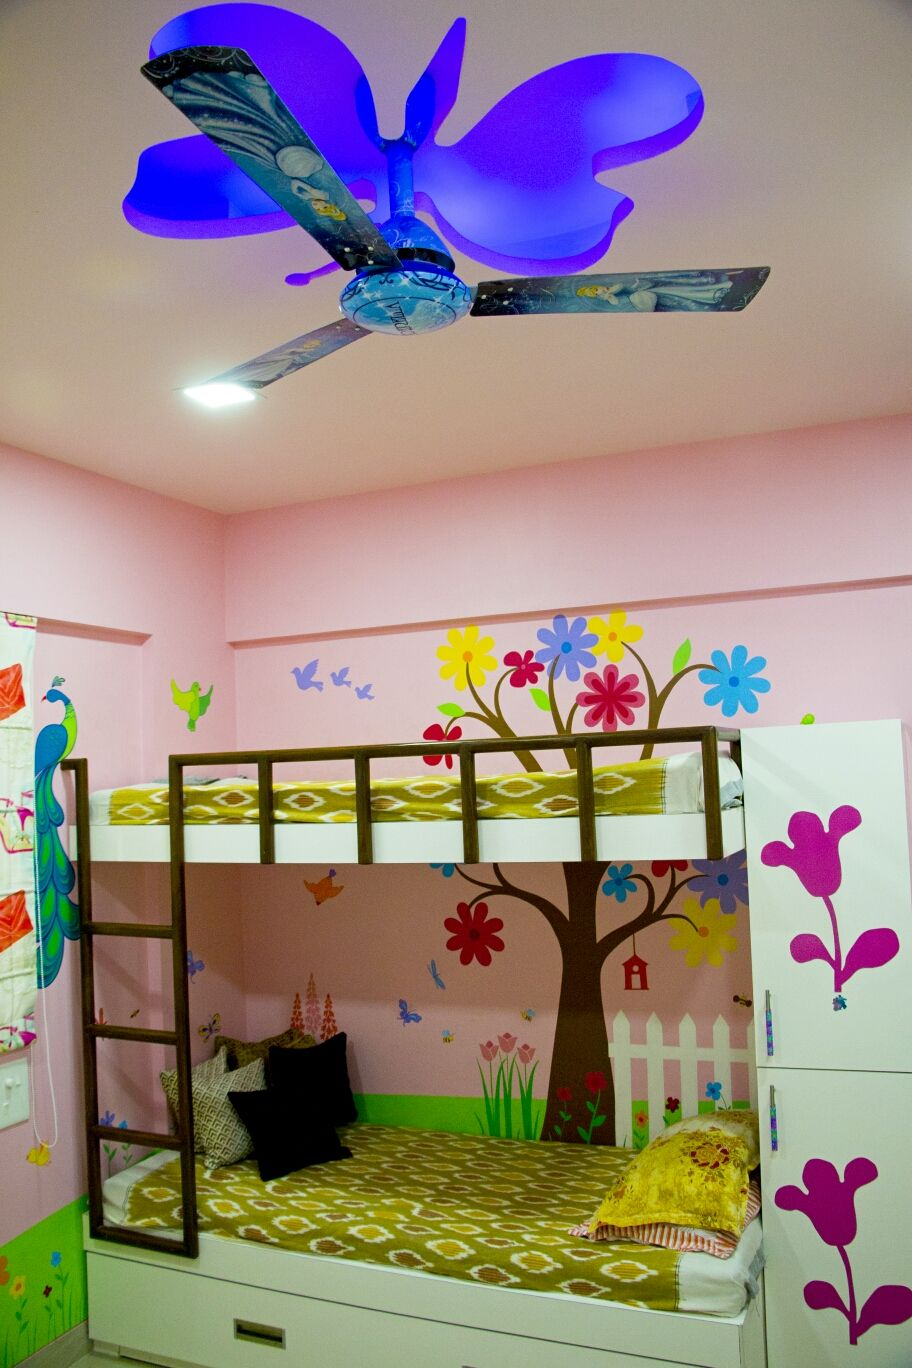 False Ceiling Design In Children Room By Alacritys Architecture